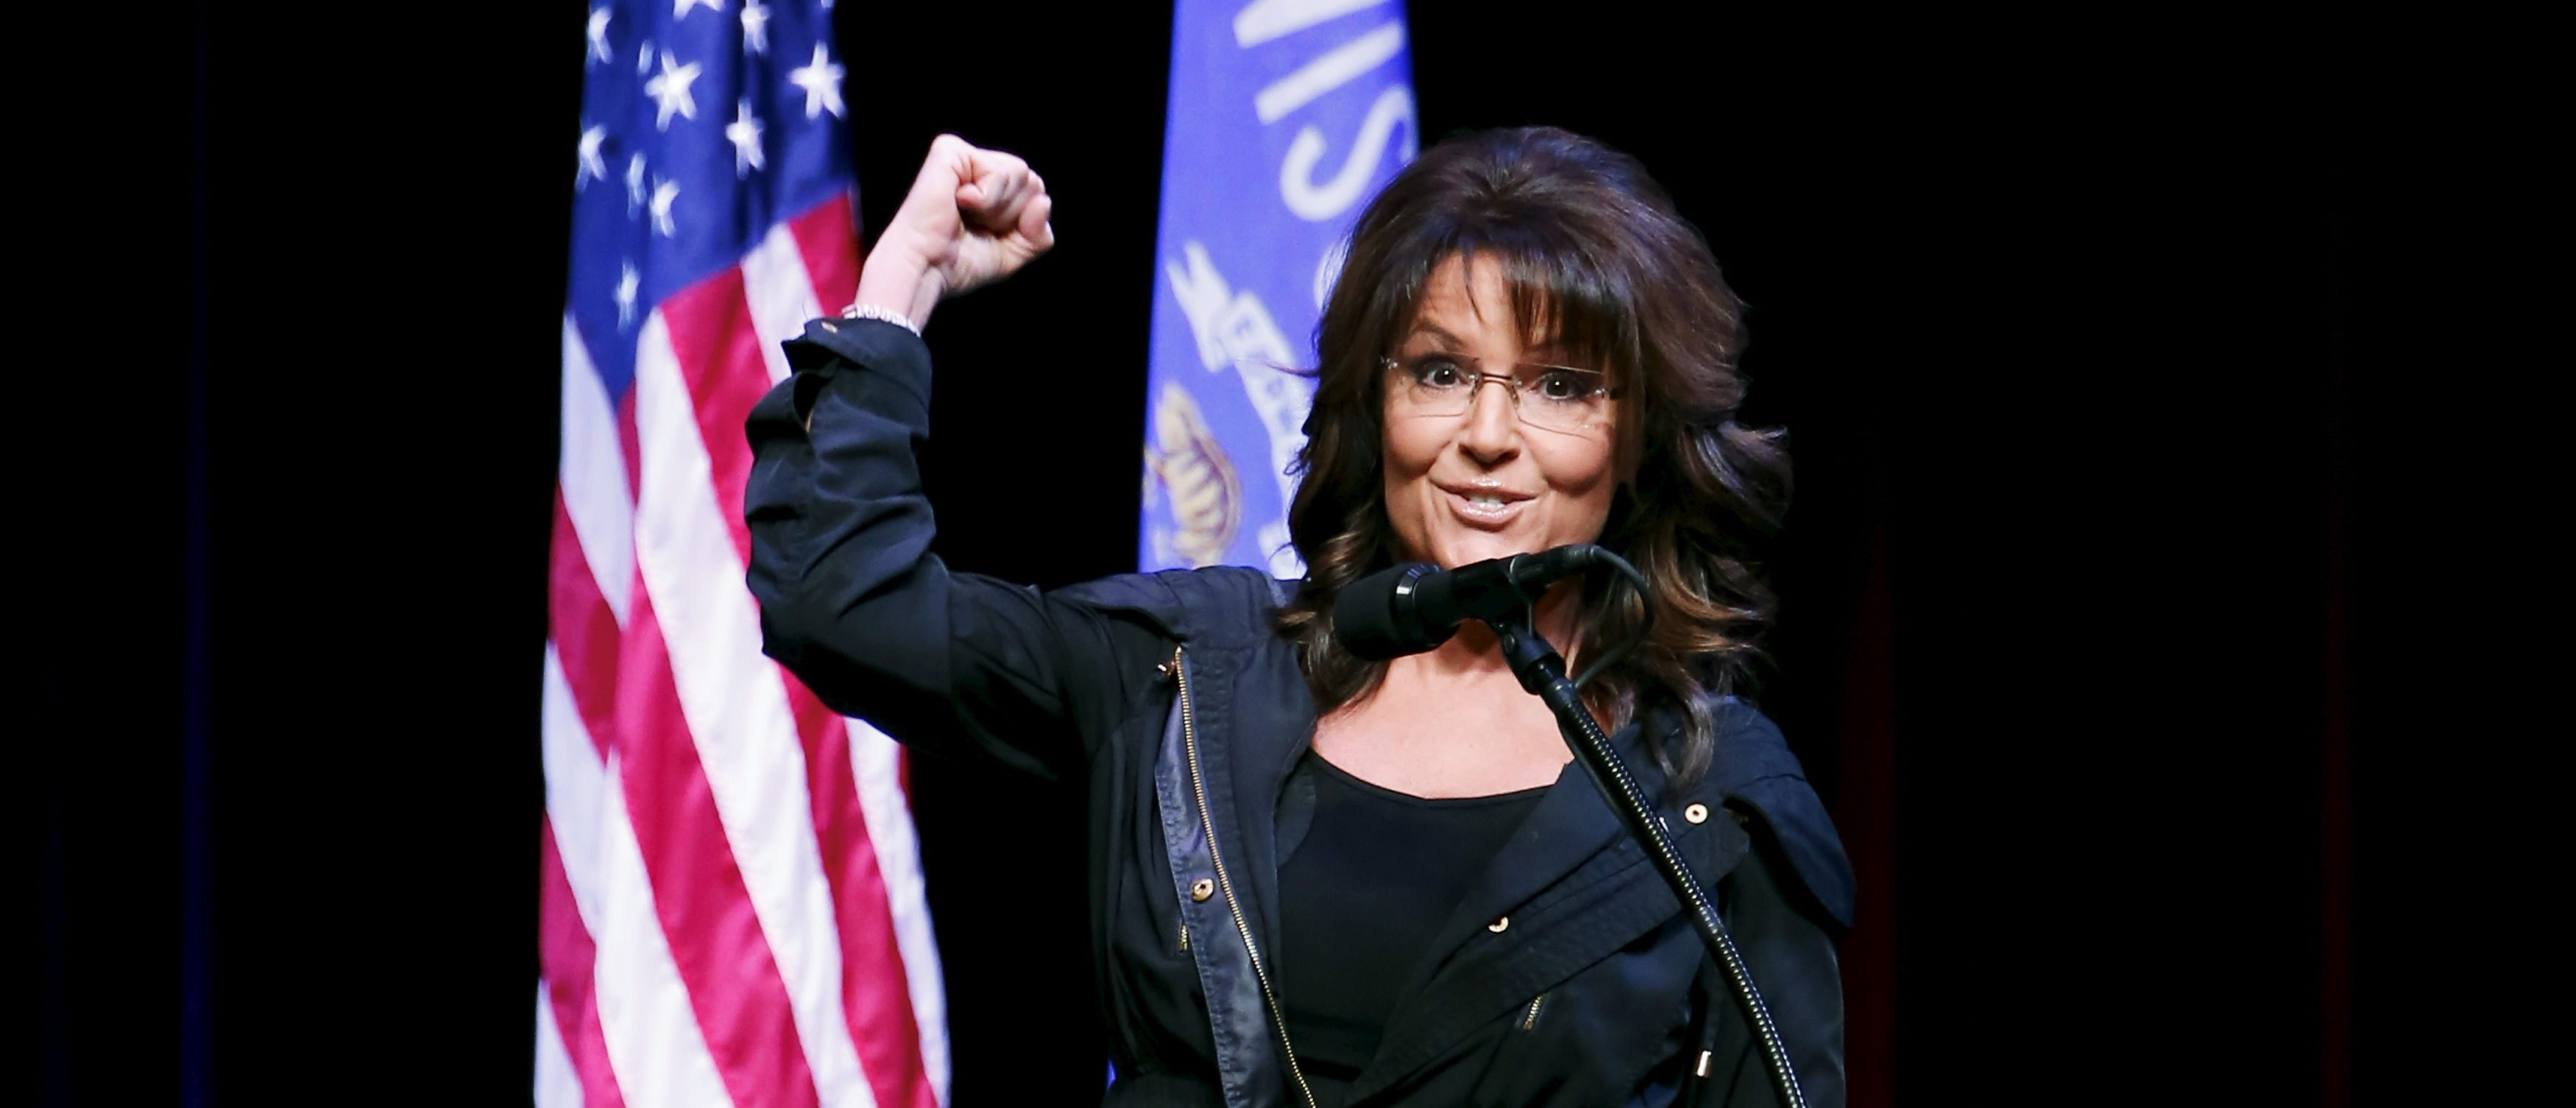 Sarah Palin's Daughter Willow Bailey Gives Birth To Twin Girls